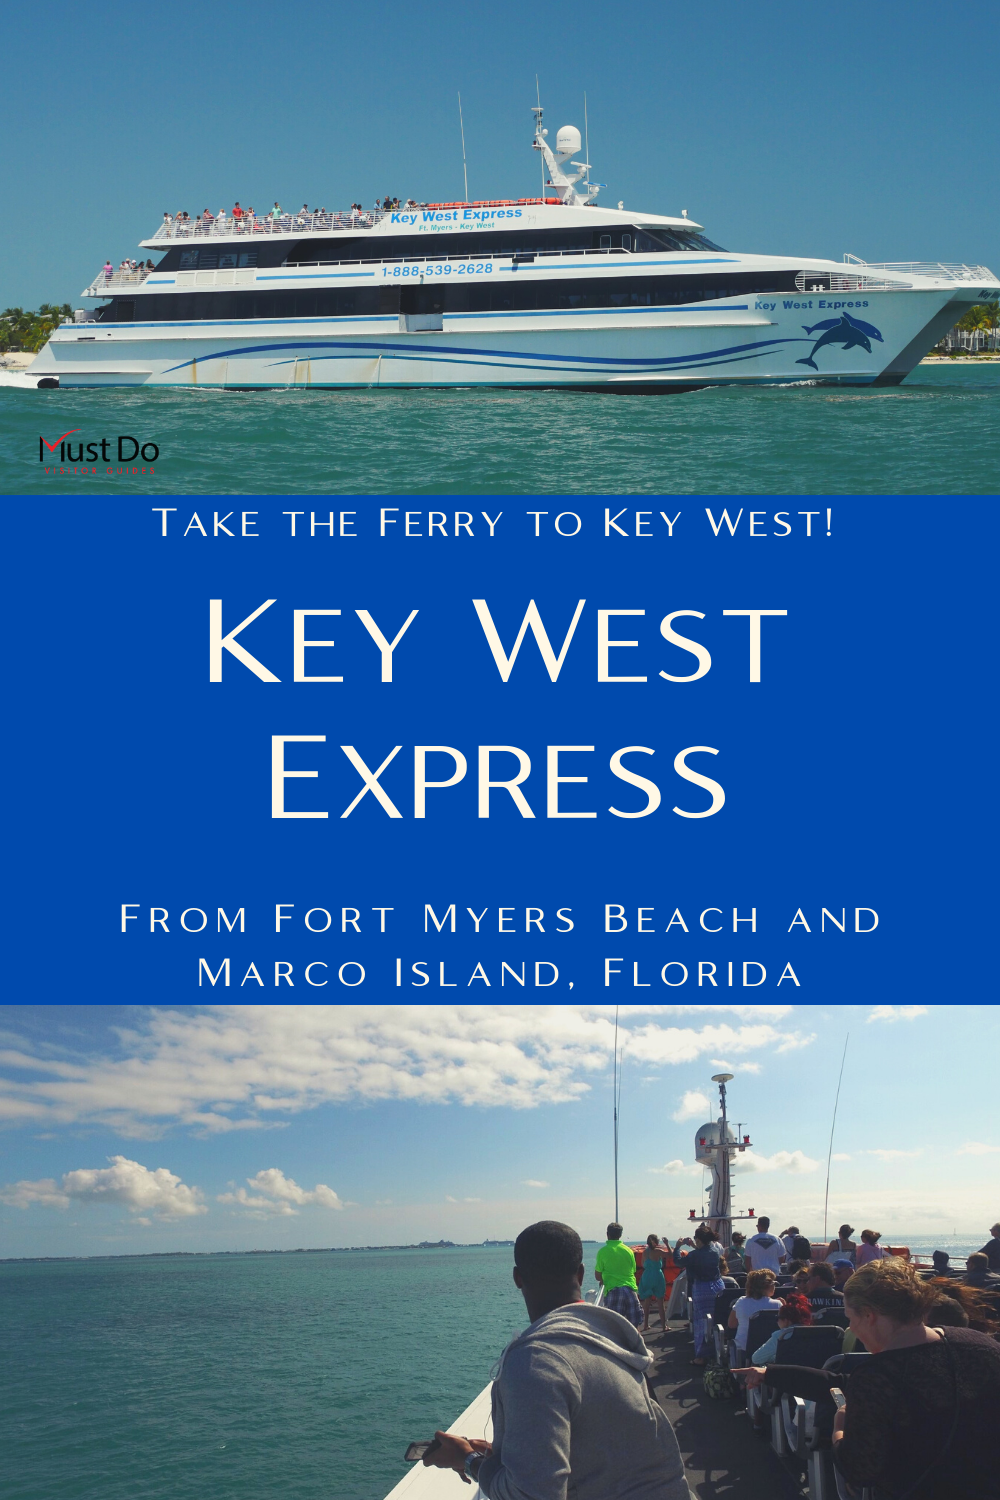 Take the ferry to Key West! Key West Express from Fort Myers Beach and Marco Island, Florida. Must Do Visitor Guides | MustDo.com